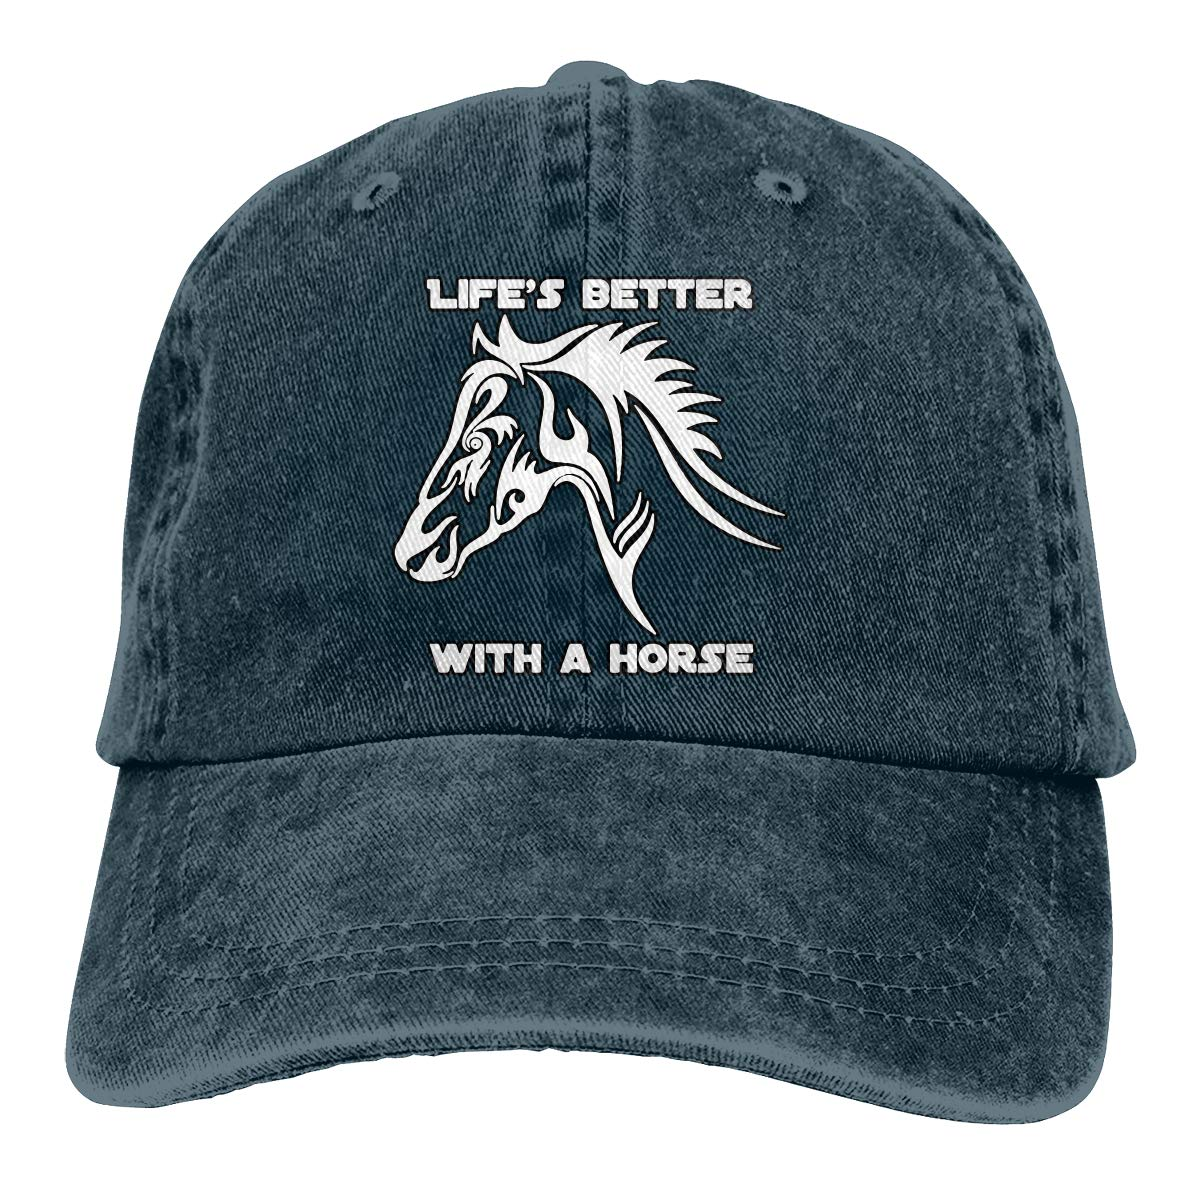 Unisex Life is Better with A Horse Vintage Washed Dad Hat Popular Adjustable Baseball Cap